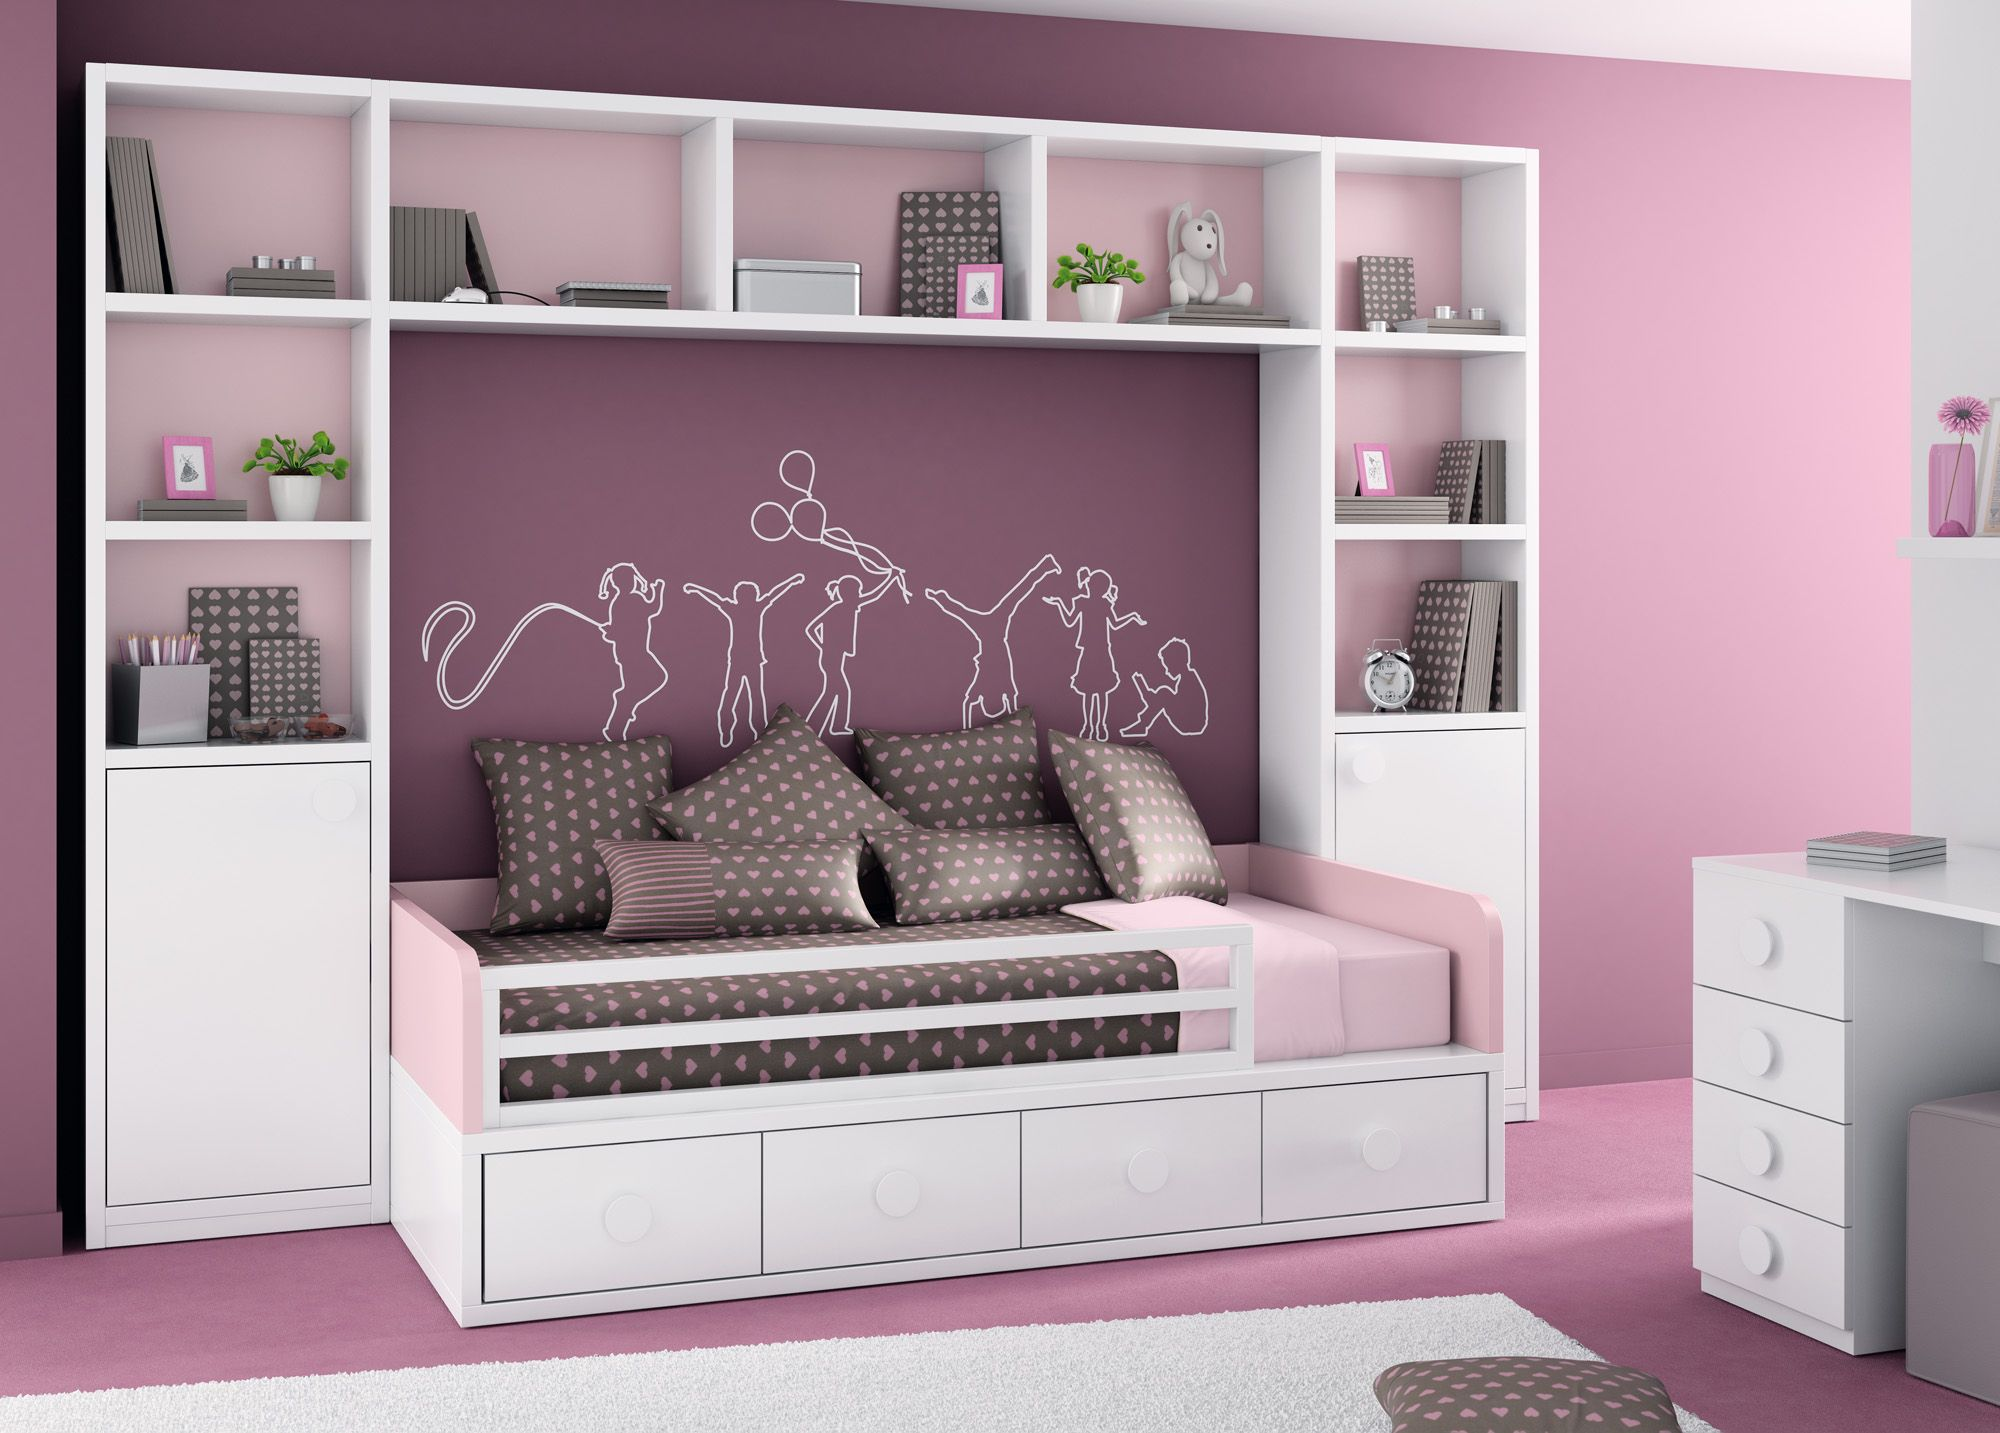 Loft bed curtain ideas  undefined  interiordesign  Pinterest  Bedrooms Room and Kids rooms